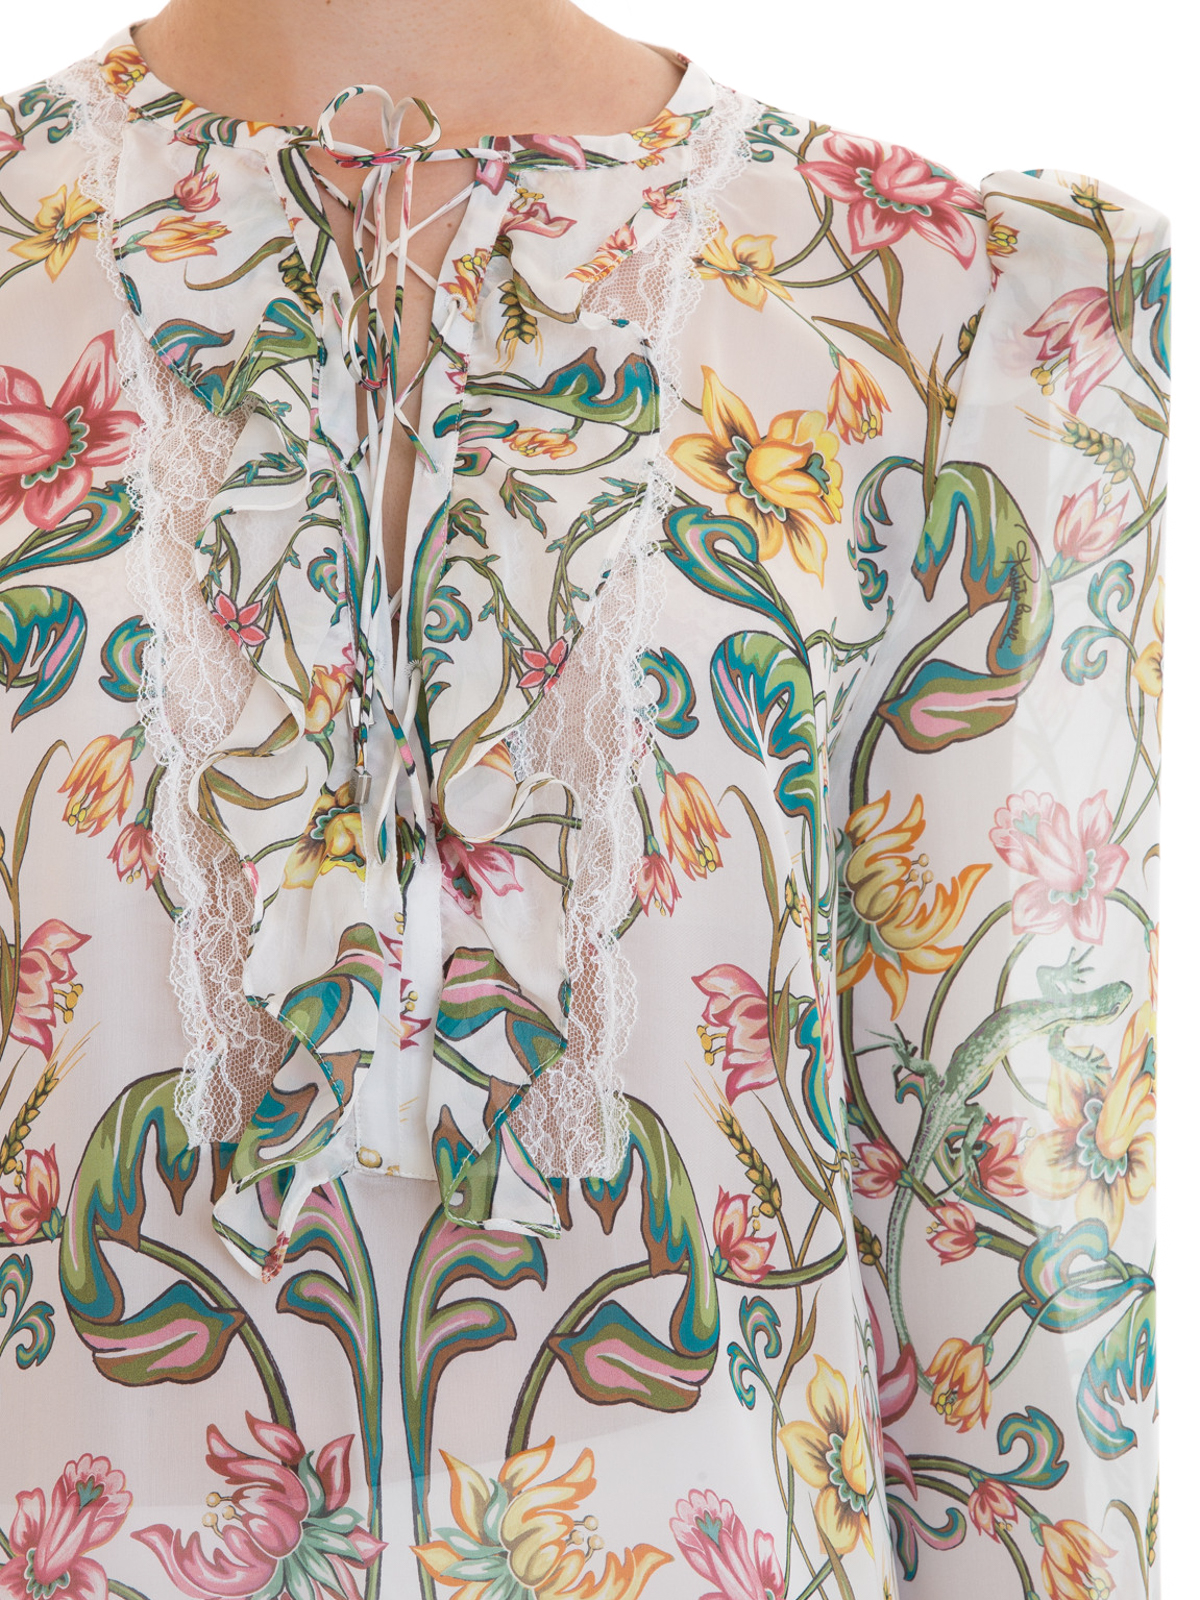 aad26d389427f Roberto Cavalli - Ruched floral silk blouse - blouses - EWT721CTE06D0745